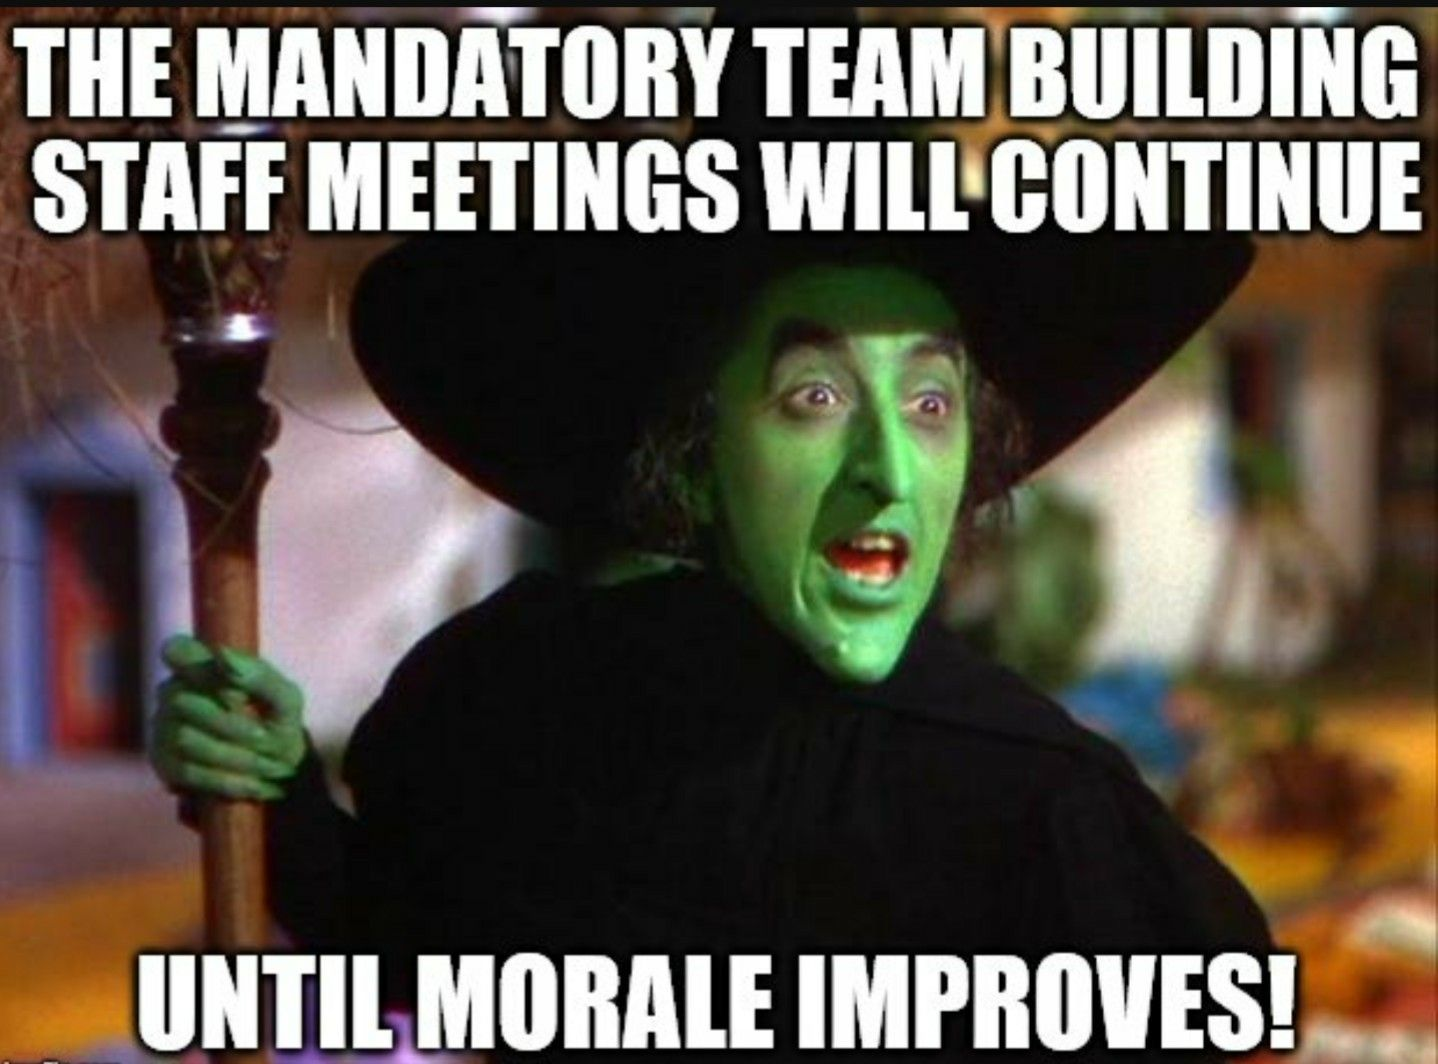 Another Staff Meeting Meme